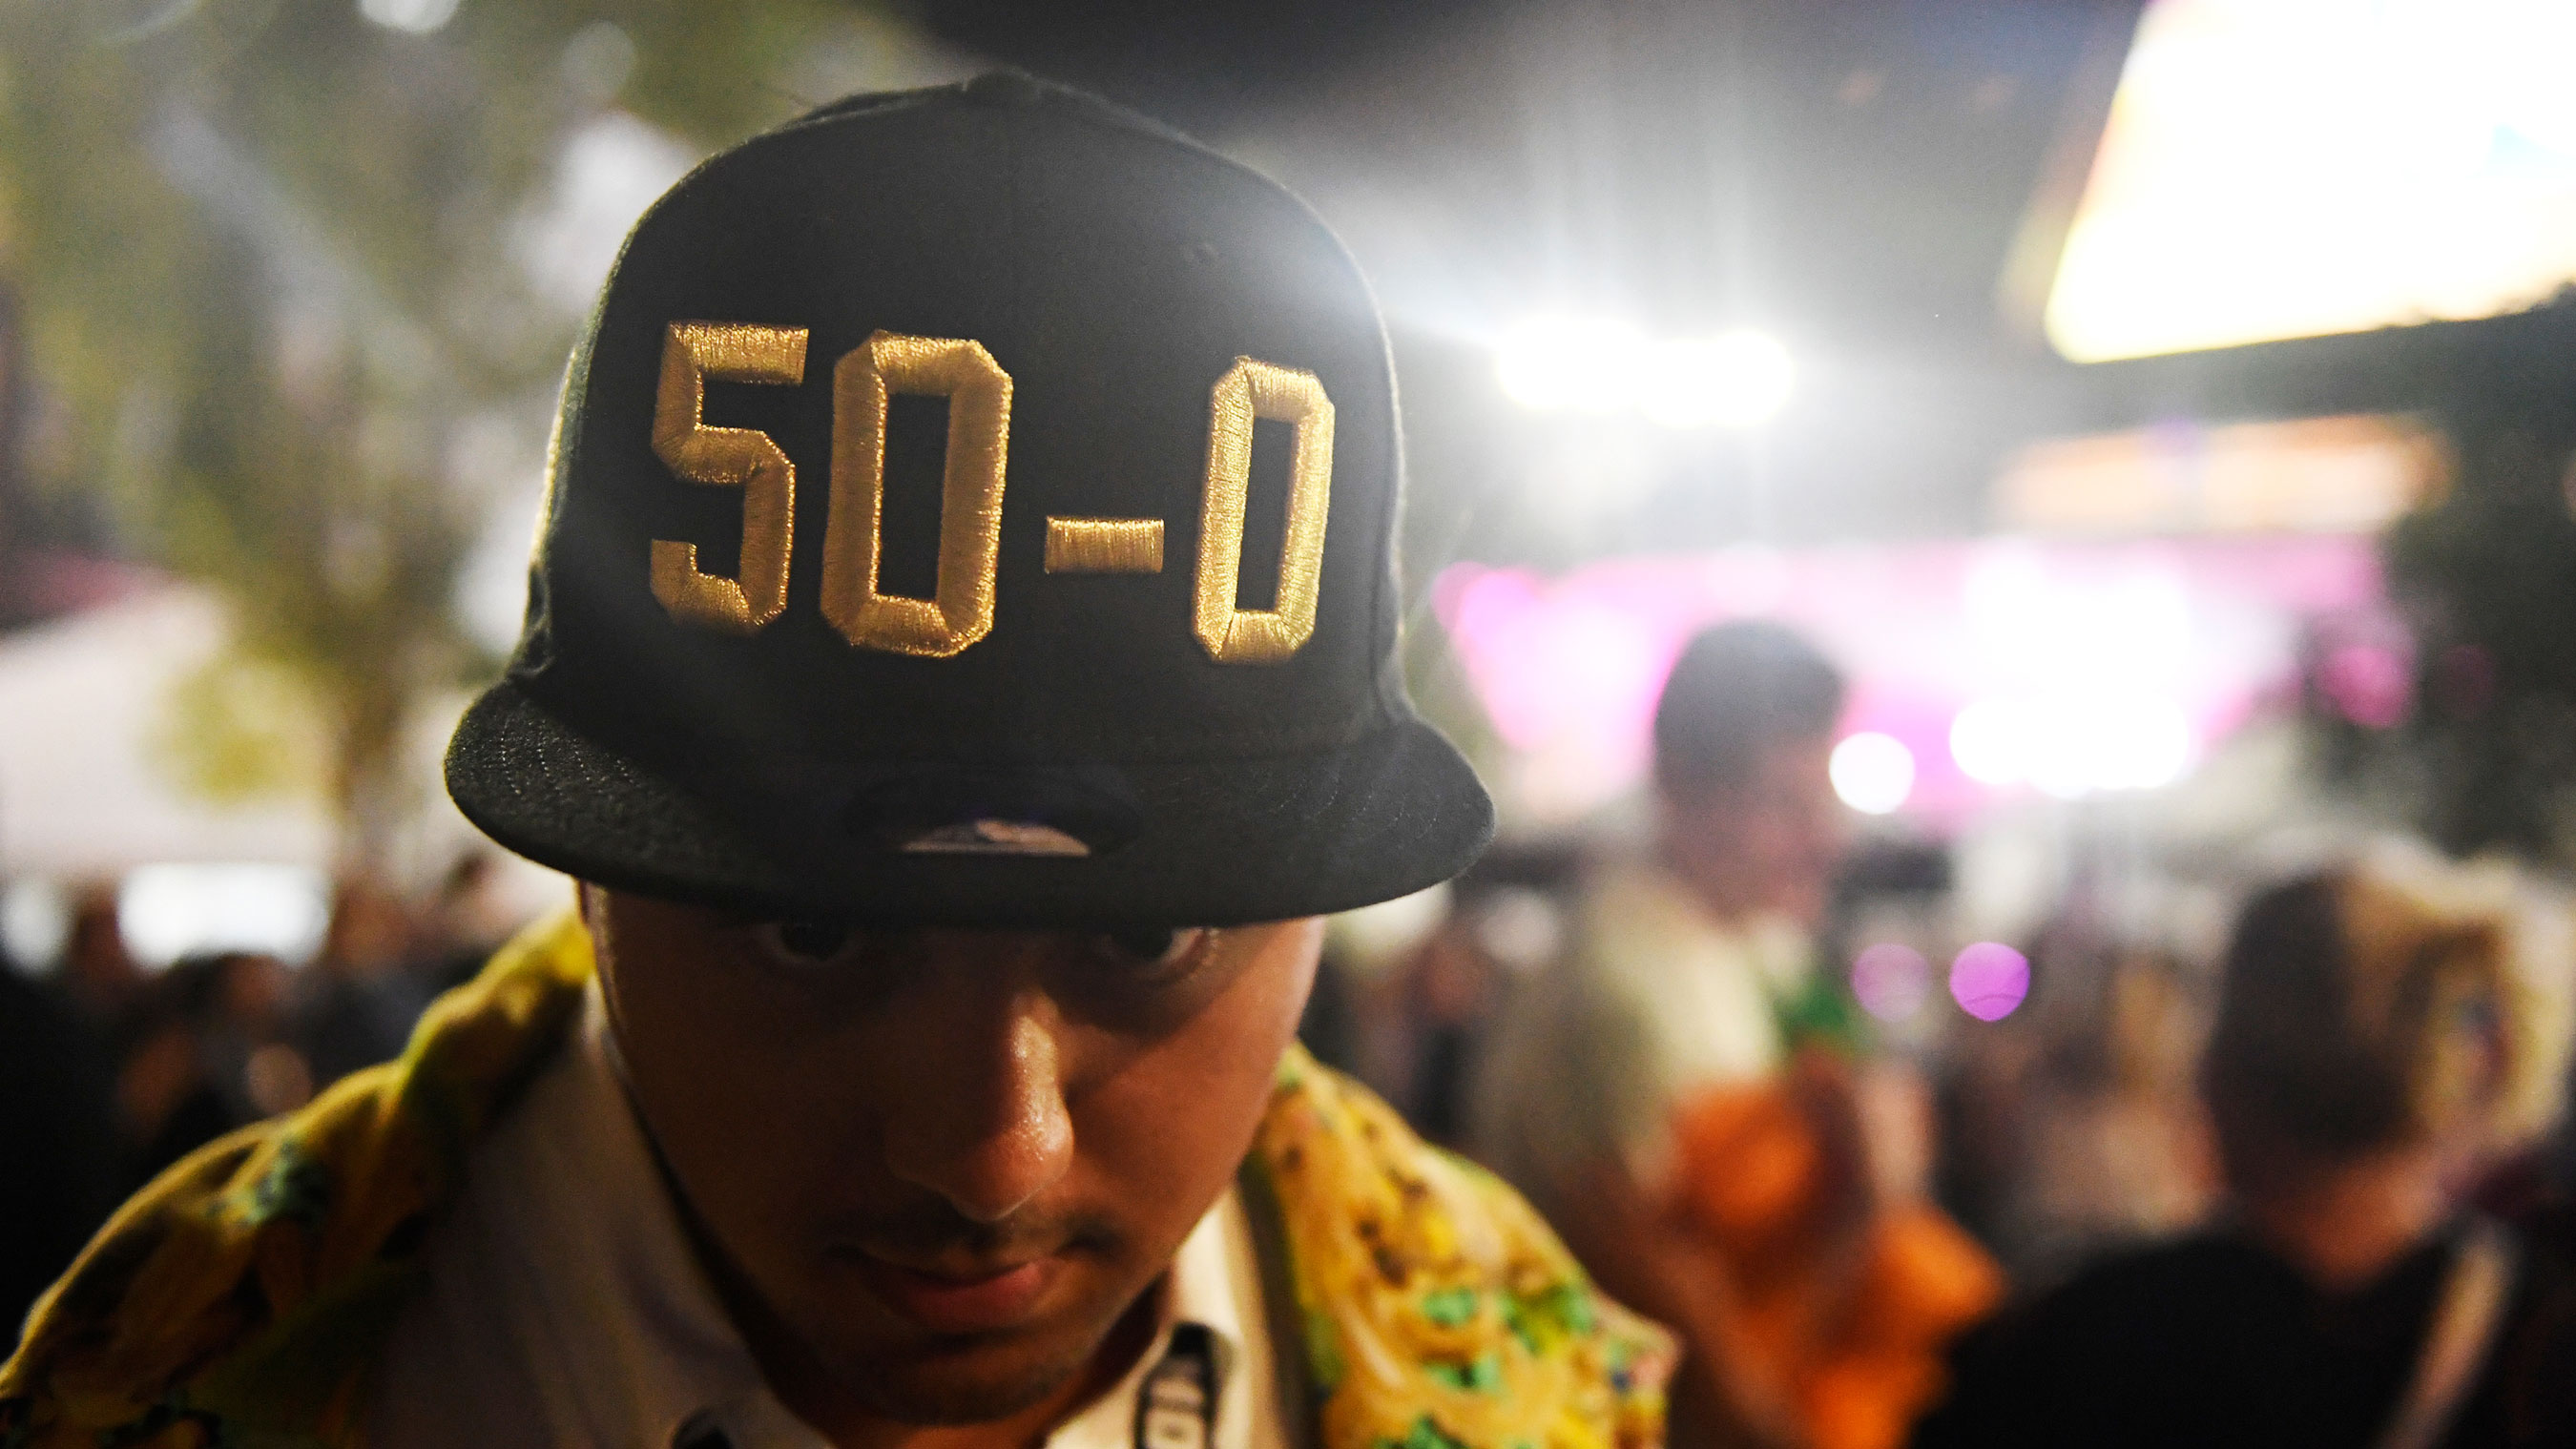 d814c7a5b12a3 Mayweather and McGregor — and the BIG3 — win big in Las Vegas